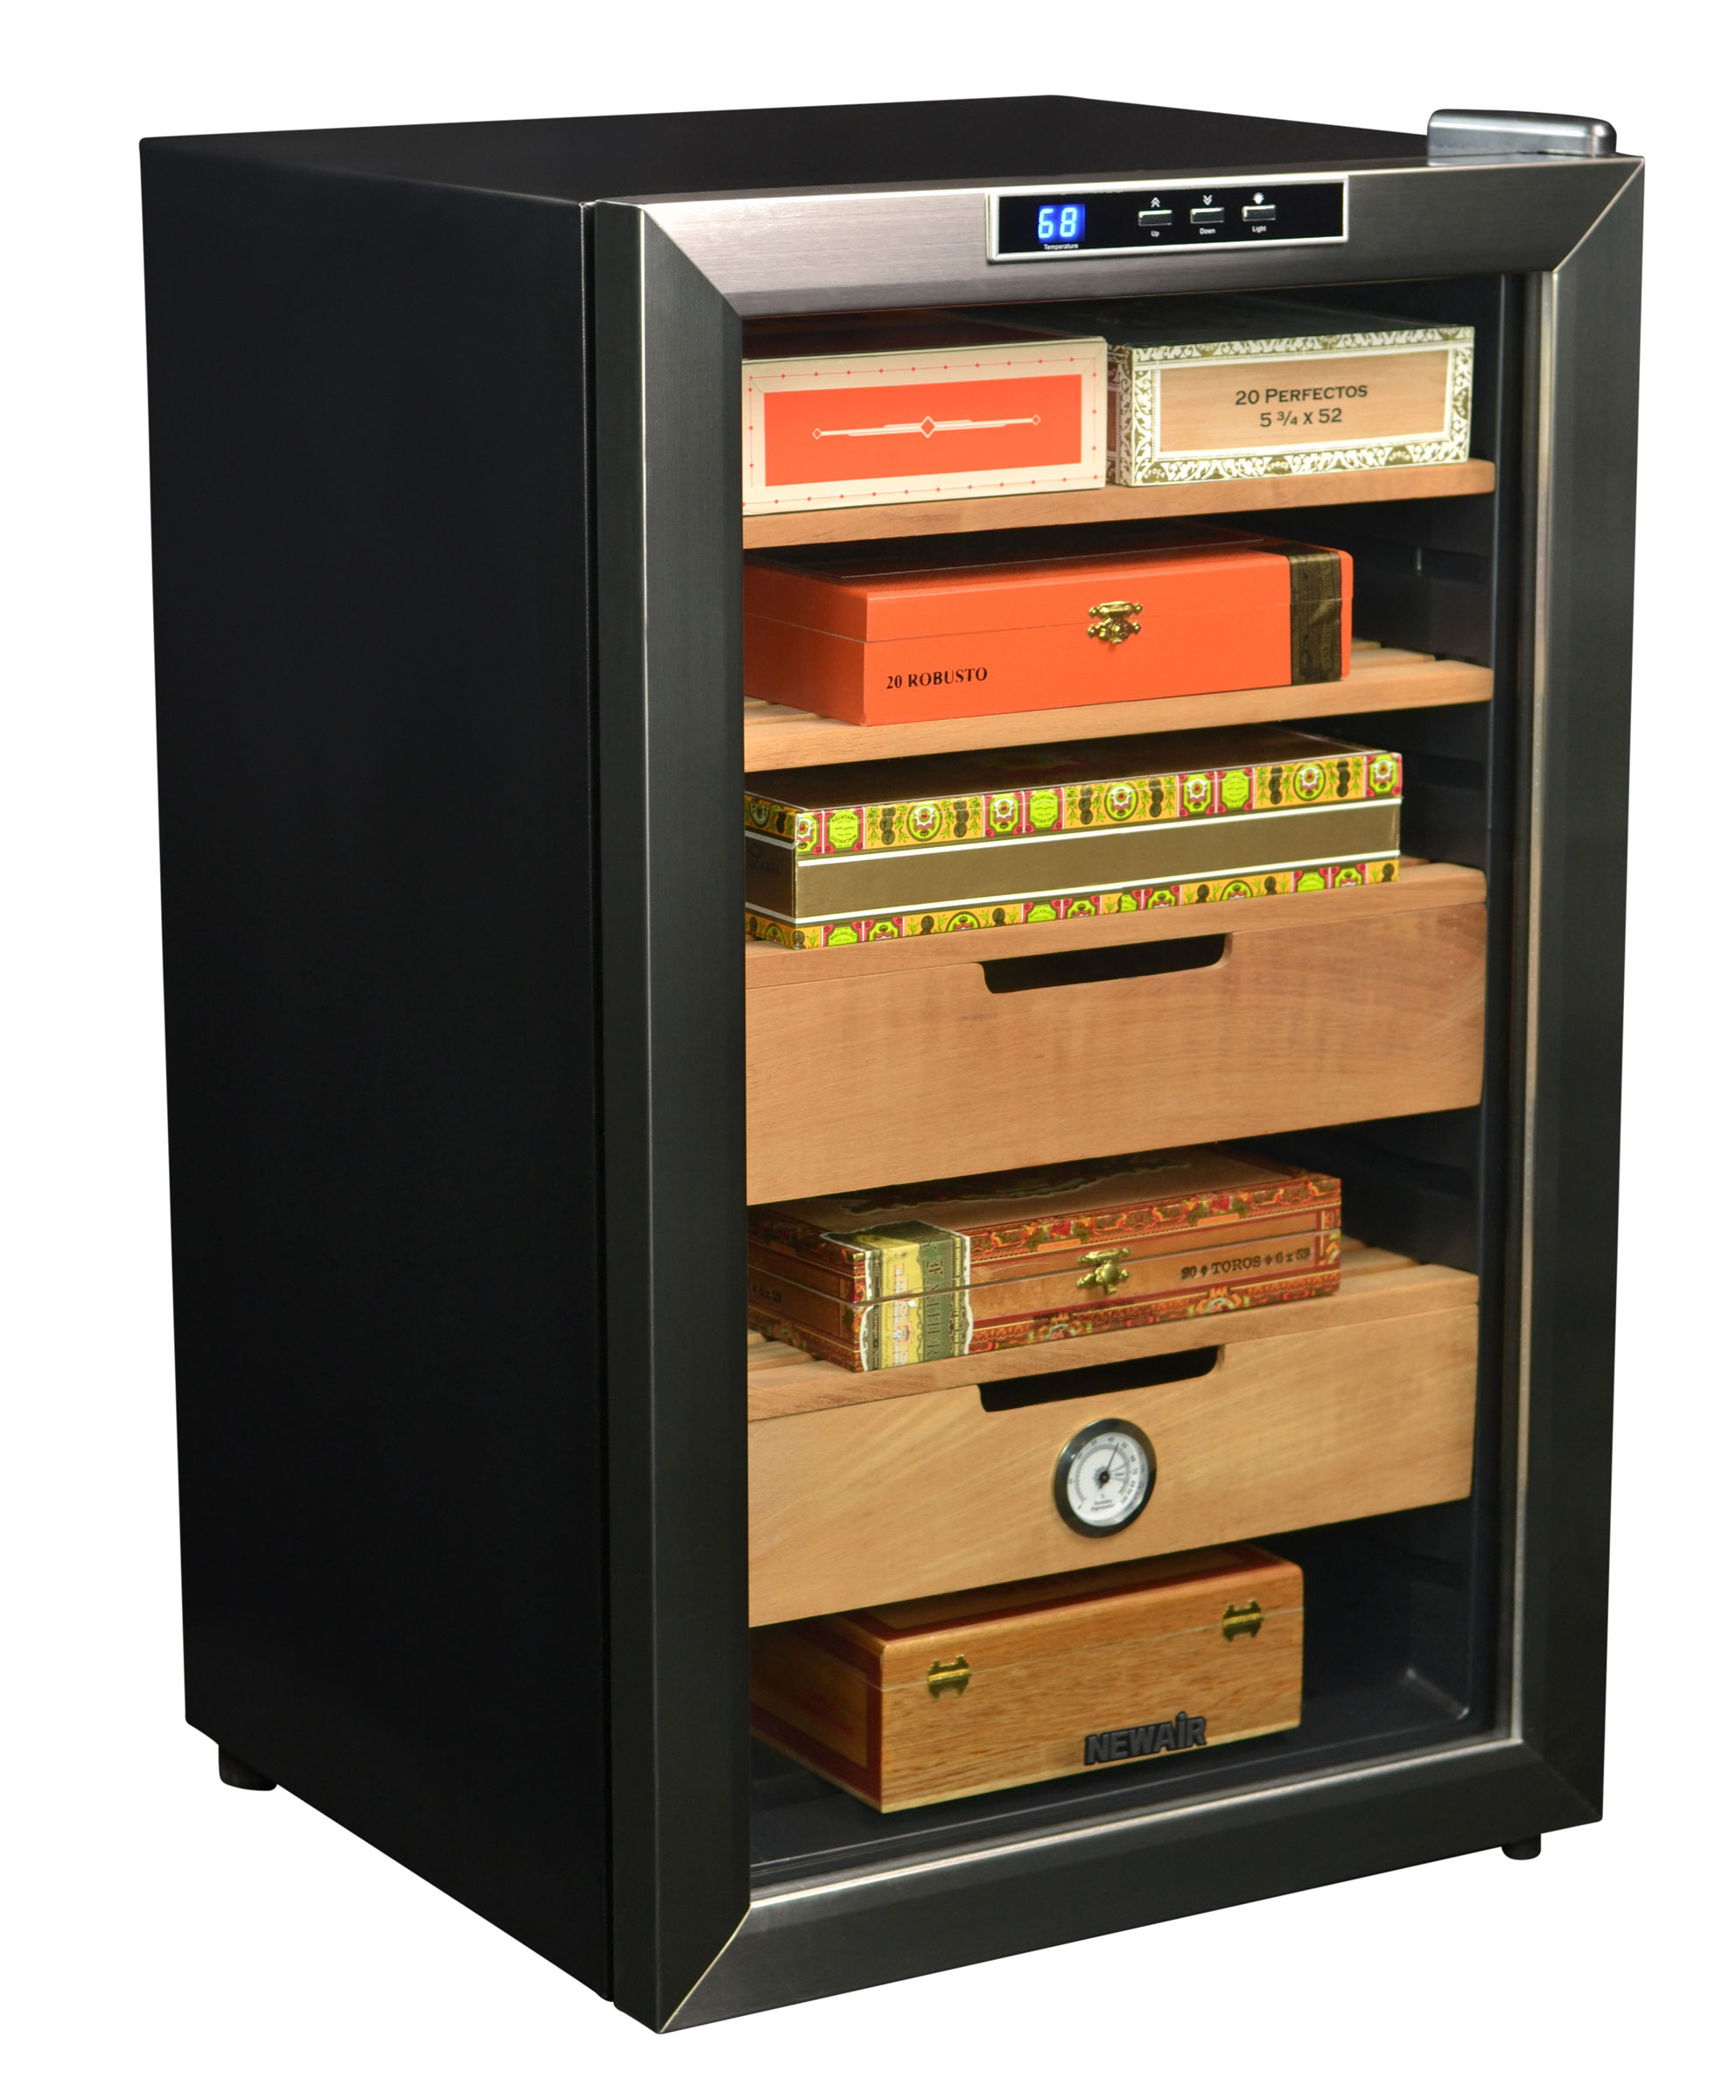 The NewAir CC-300 Thermoelectric Cigar Humidor